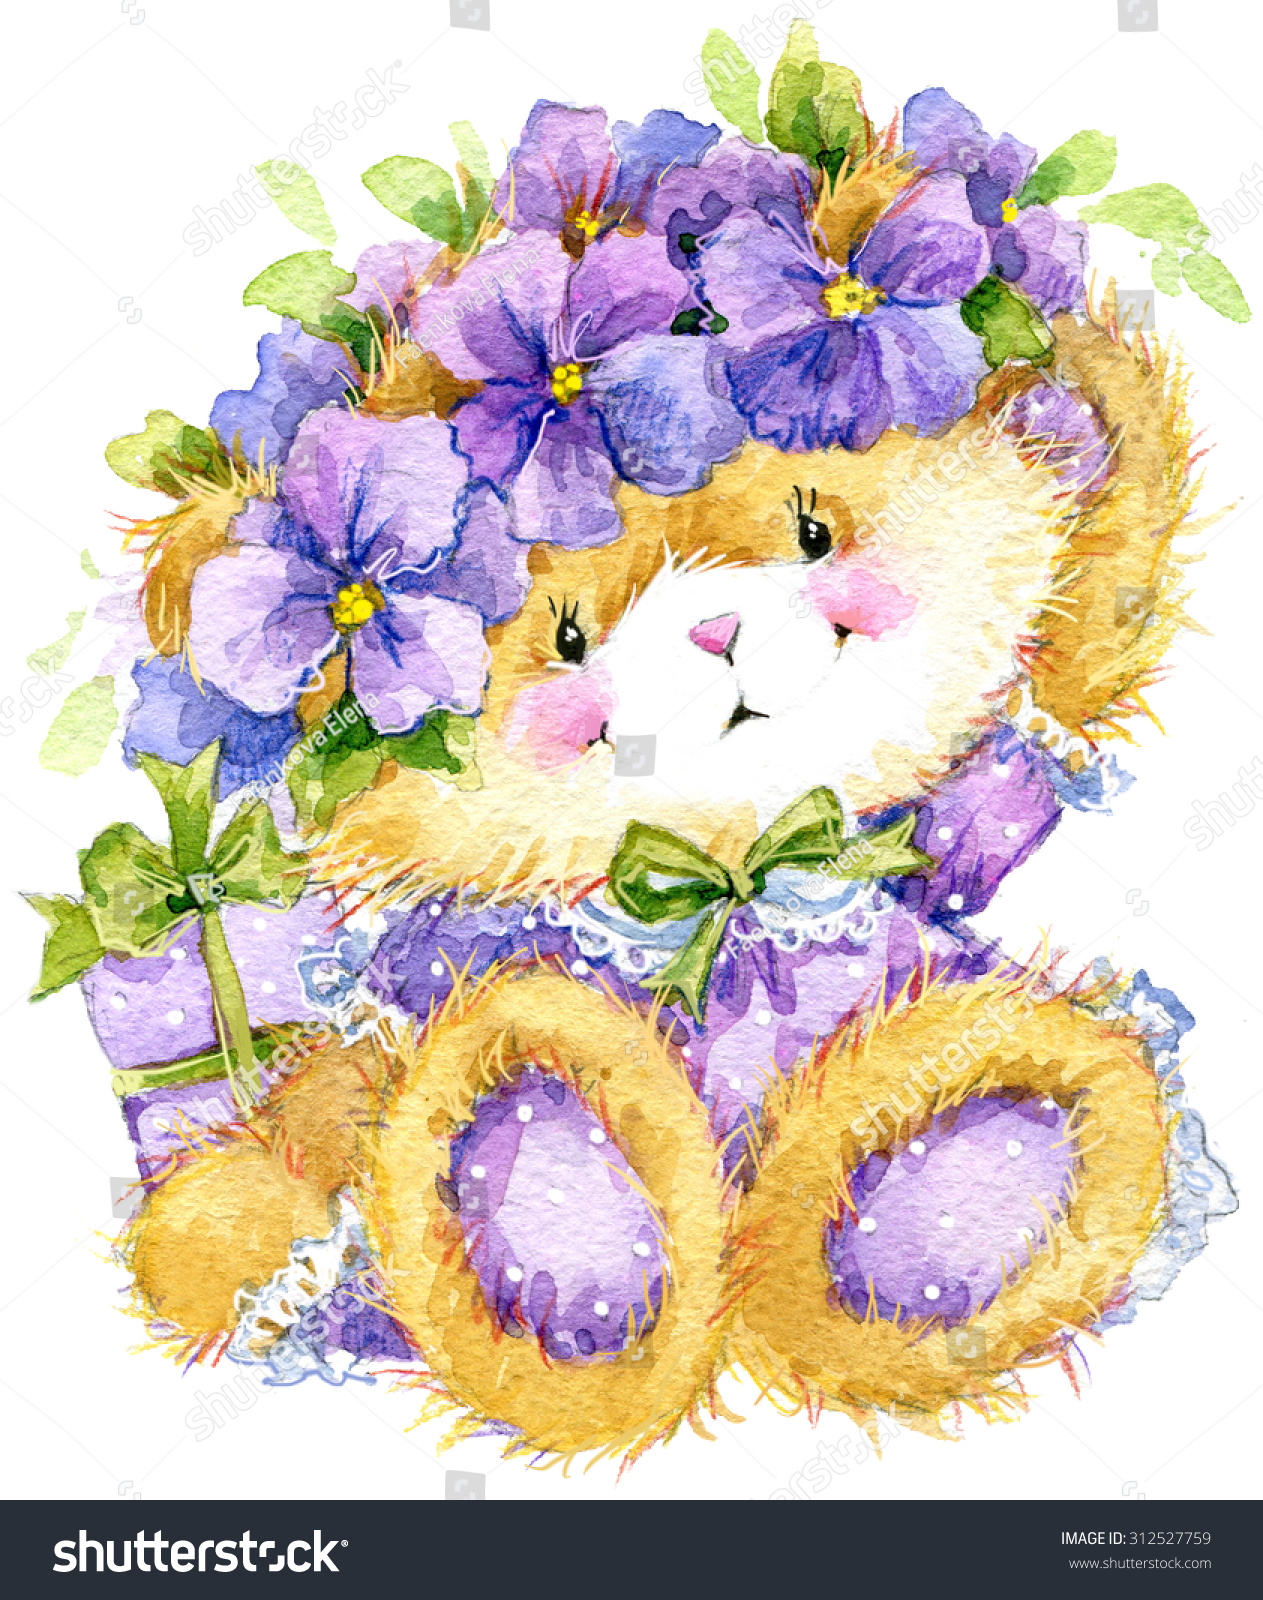 Toy Teddy Bear Flower Violet Toy Stock Illustration 312527759